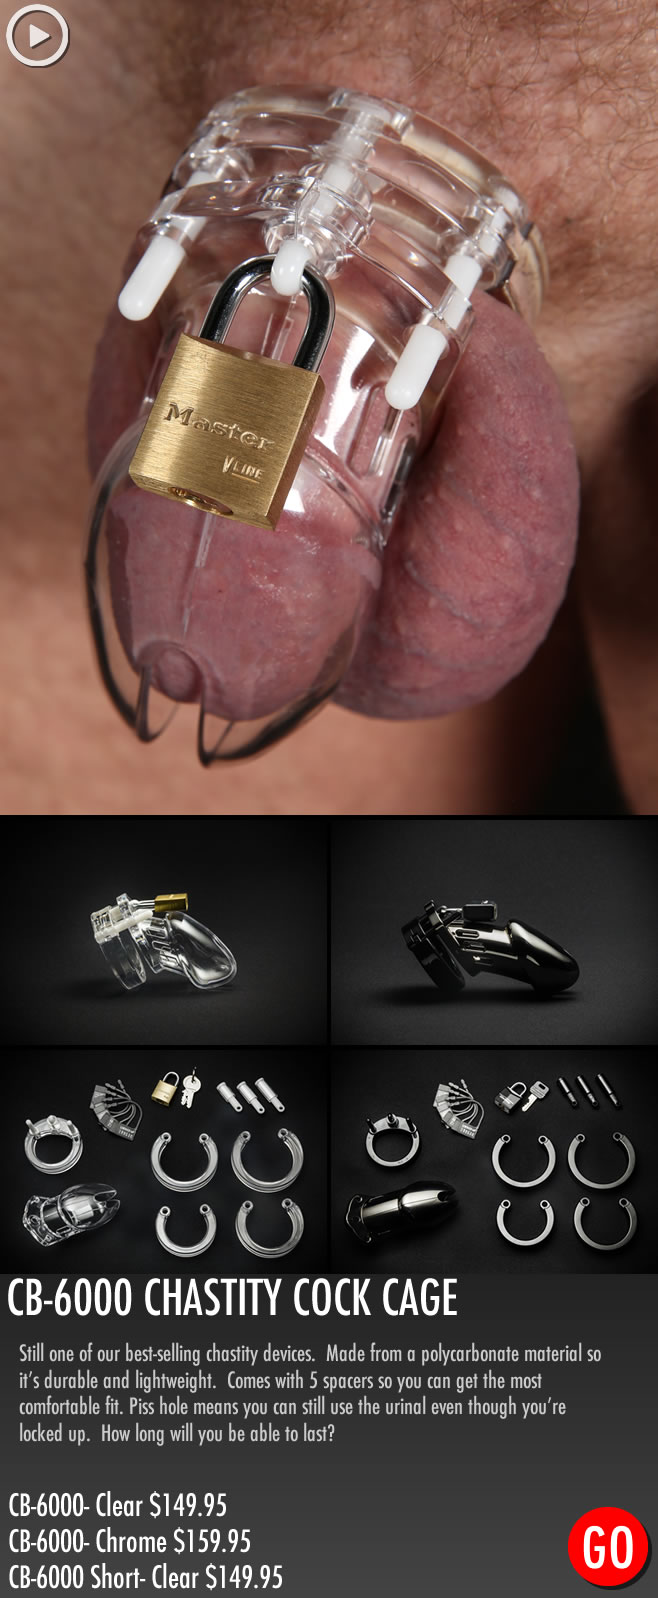 gay_chastity_CB-6000_Chastity_Cock_Cage